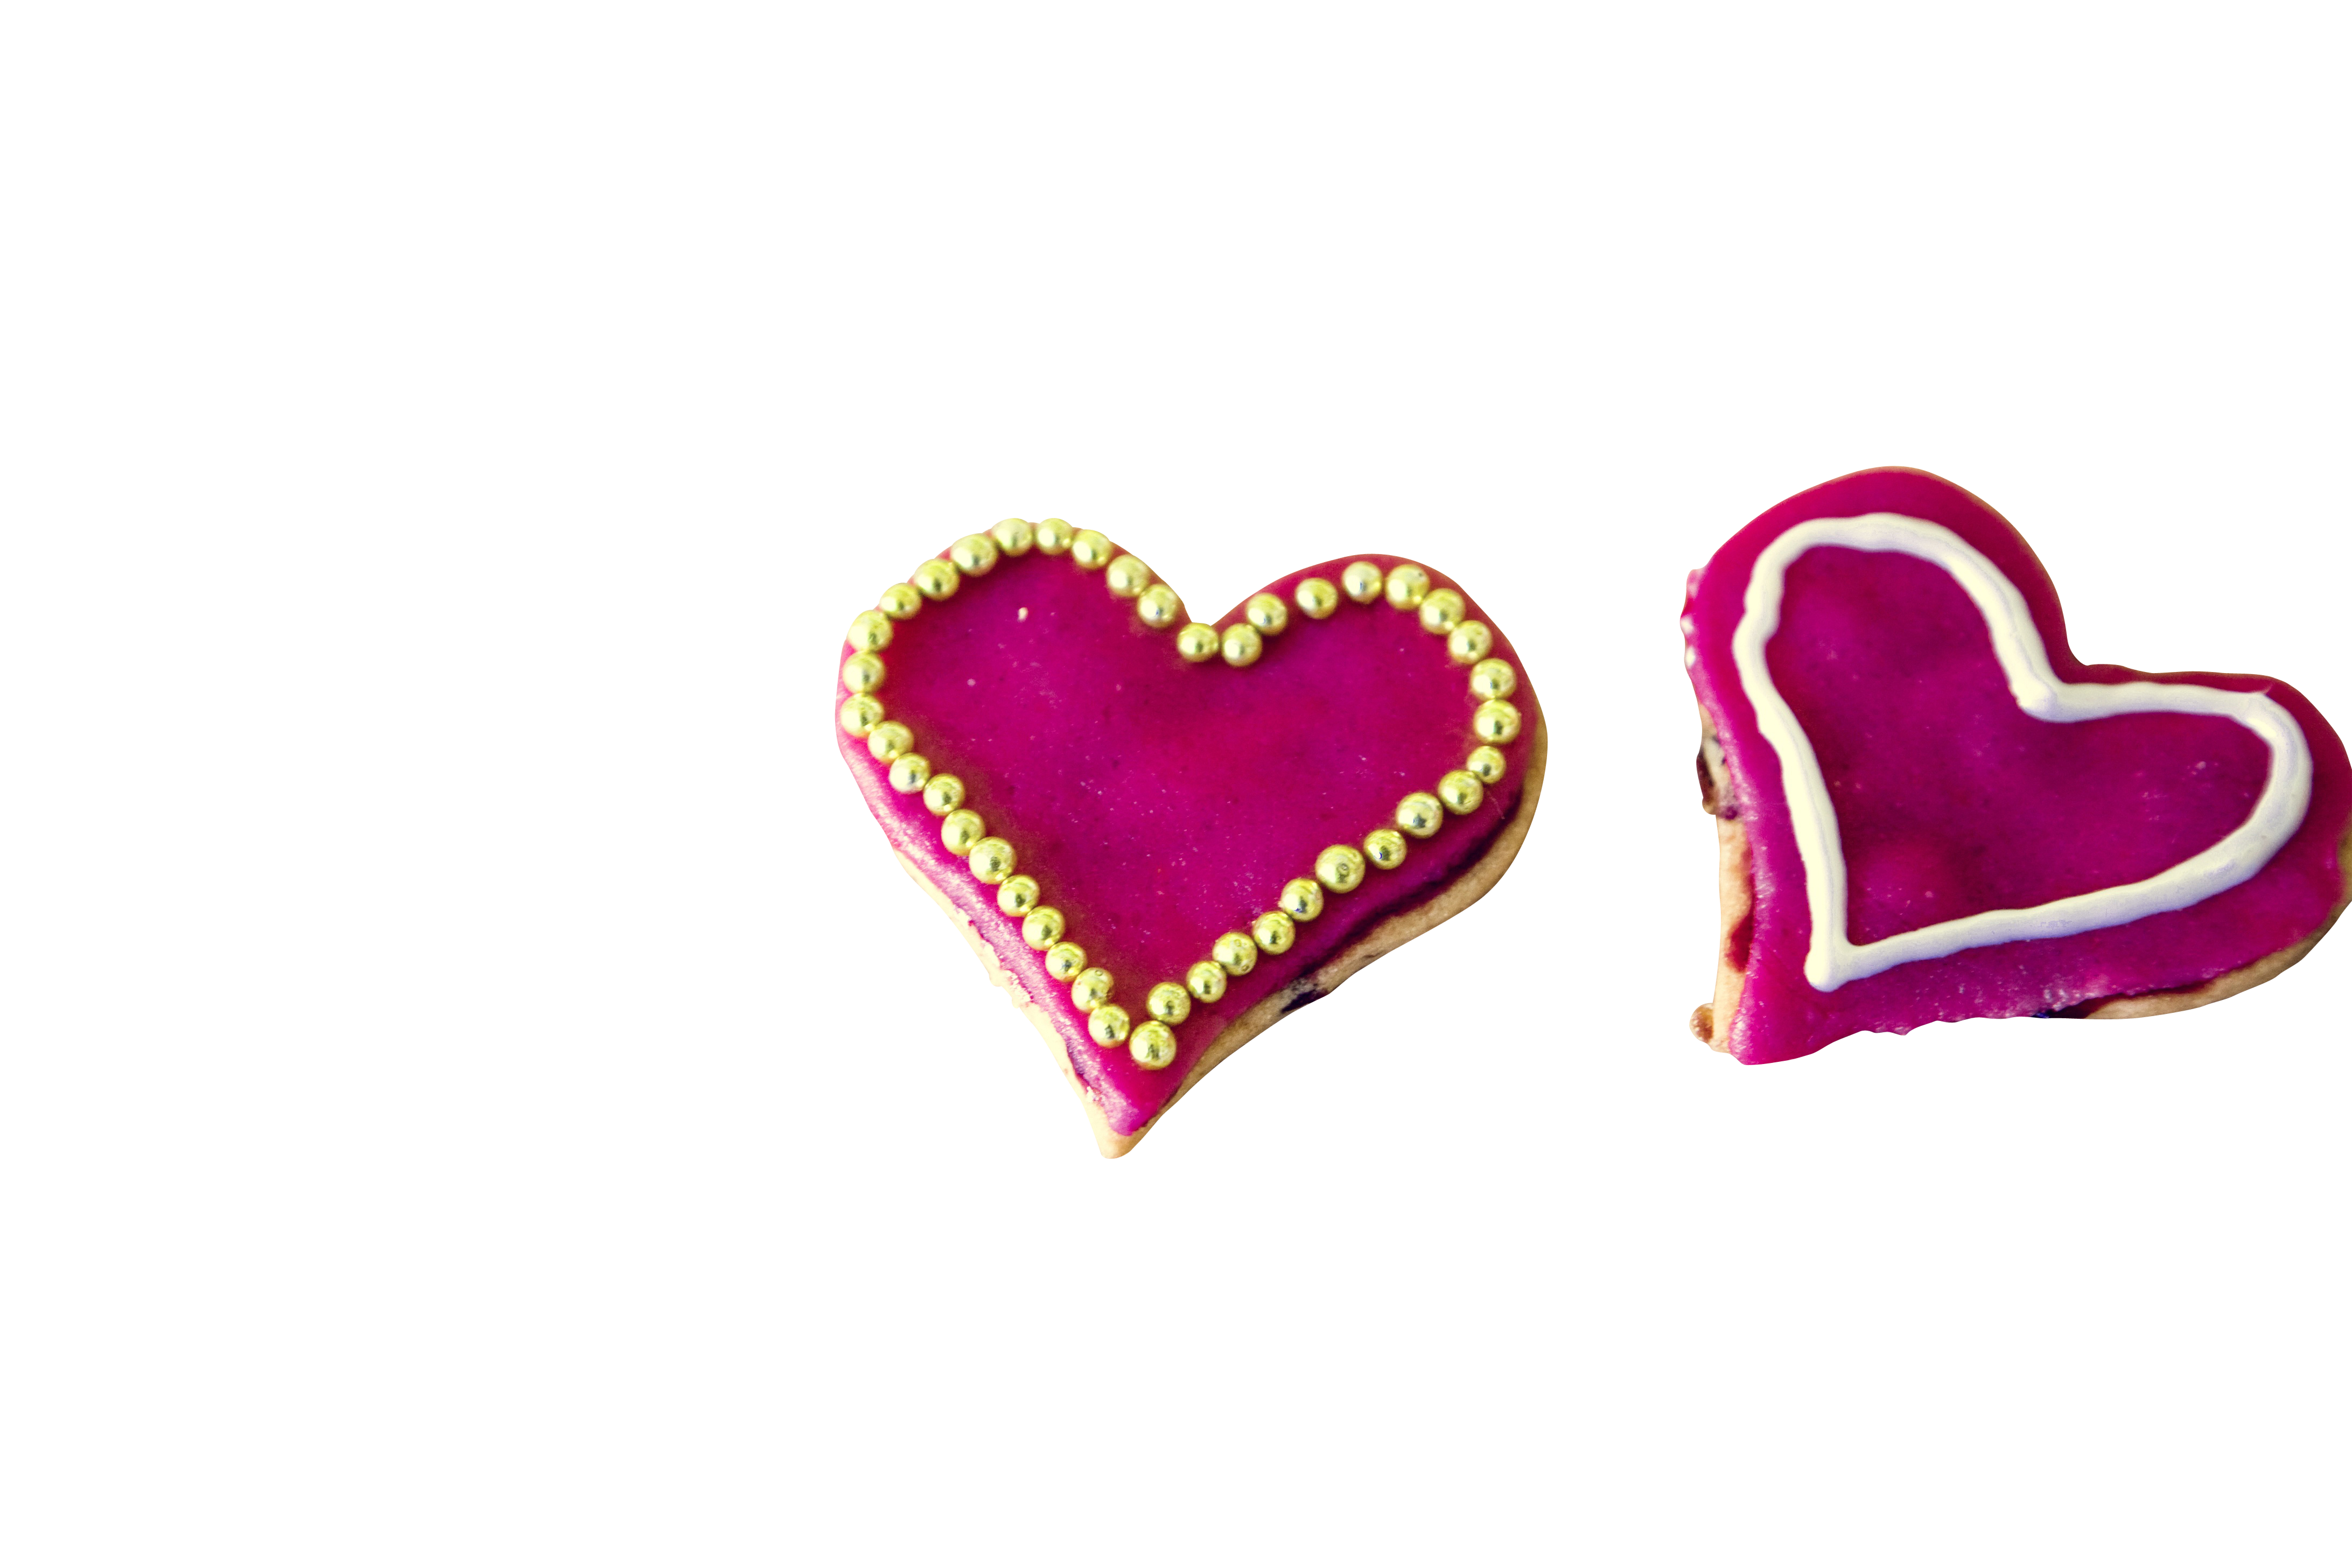 Shocking Pink Heart Creamy Cookie